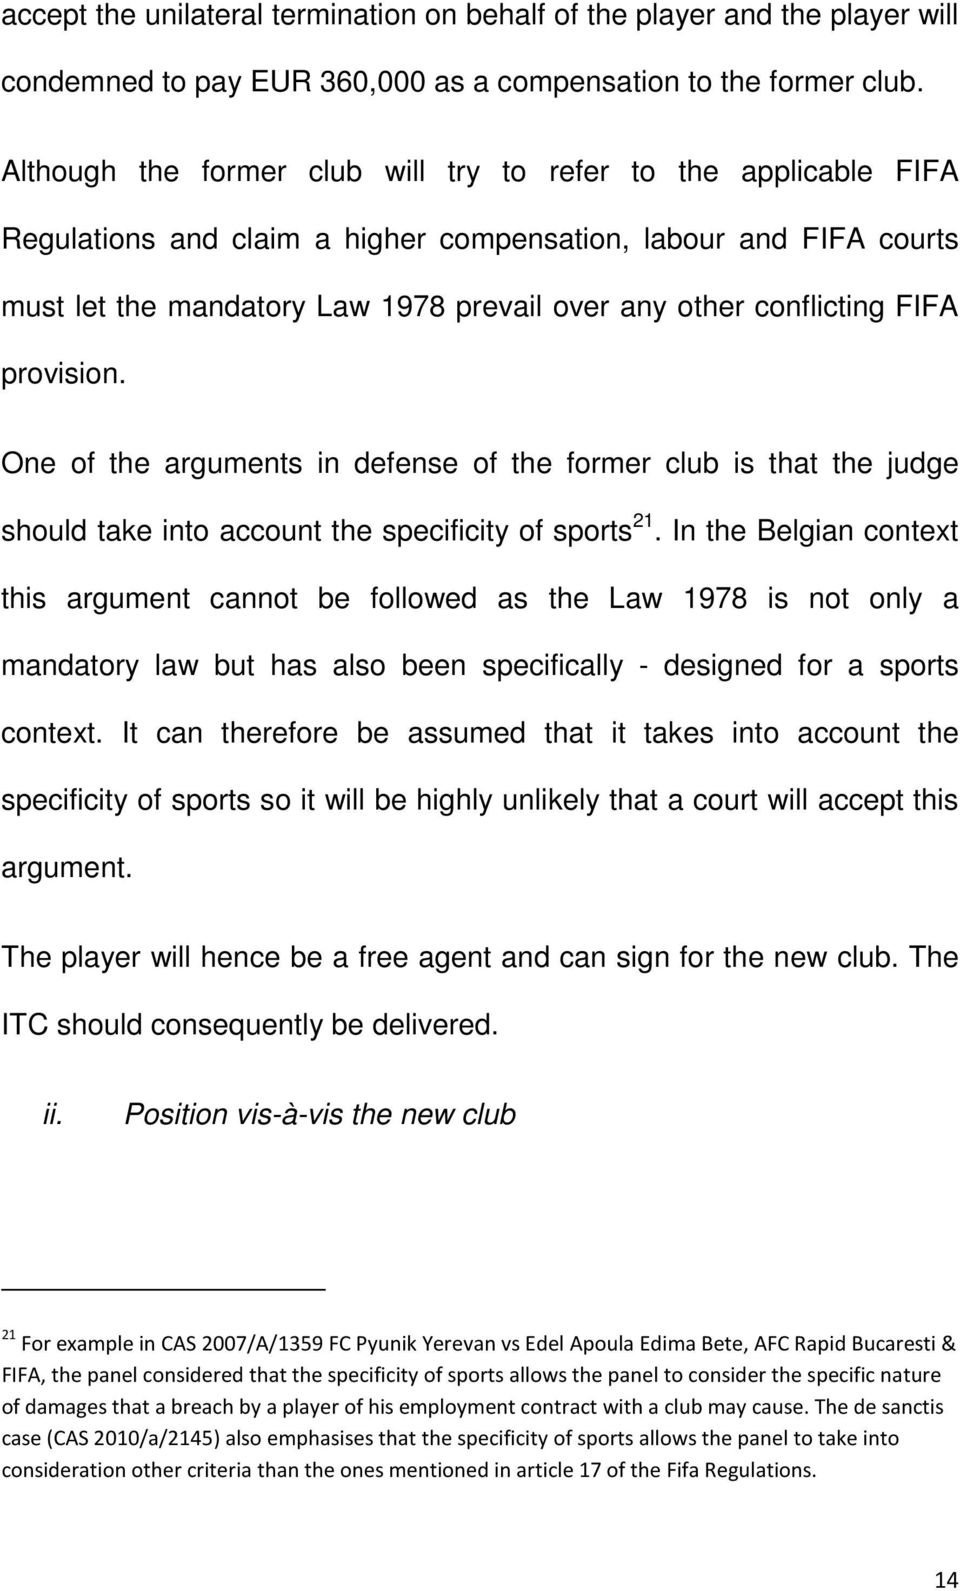 conflicting FIFA provision. One of the arguments in defense of the former club is that the judge should take into account the specificity of sports 21.